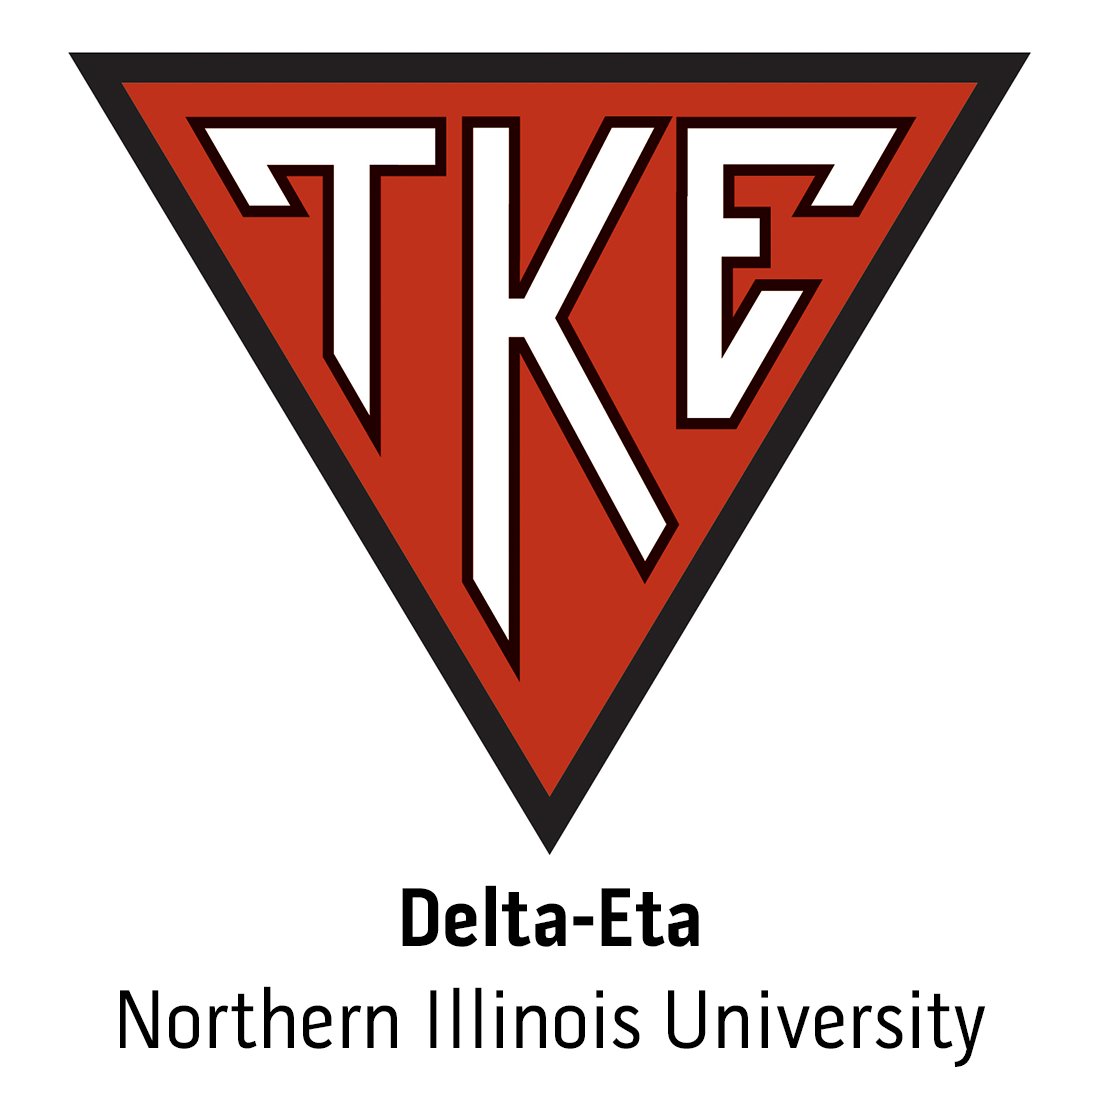 Delta-Eta Chapter at Northern Illinois University